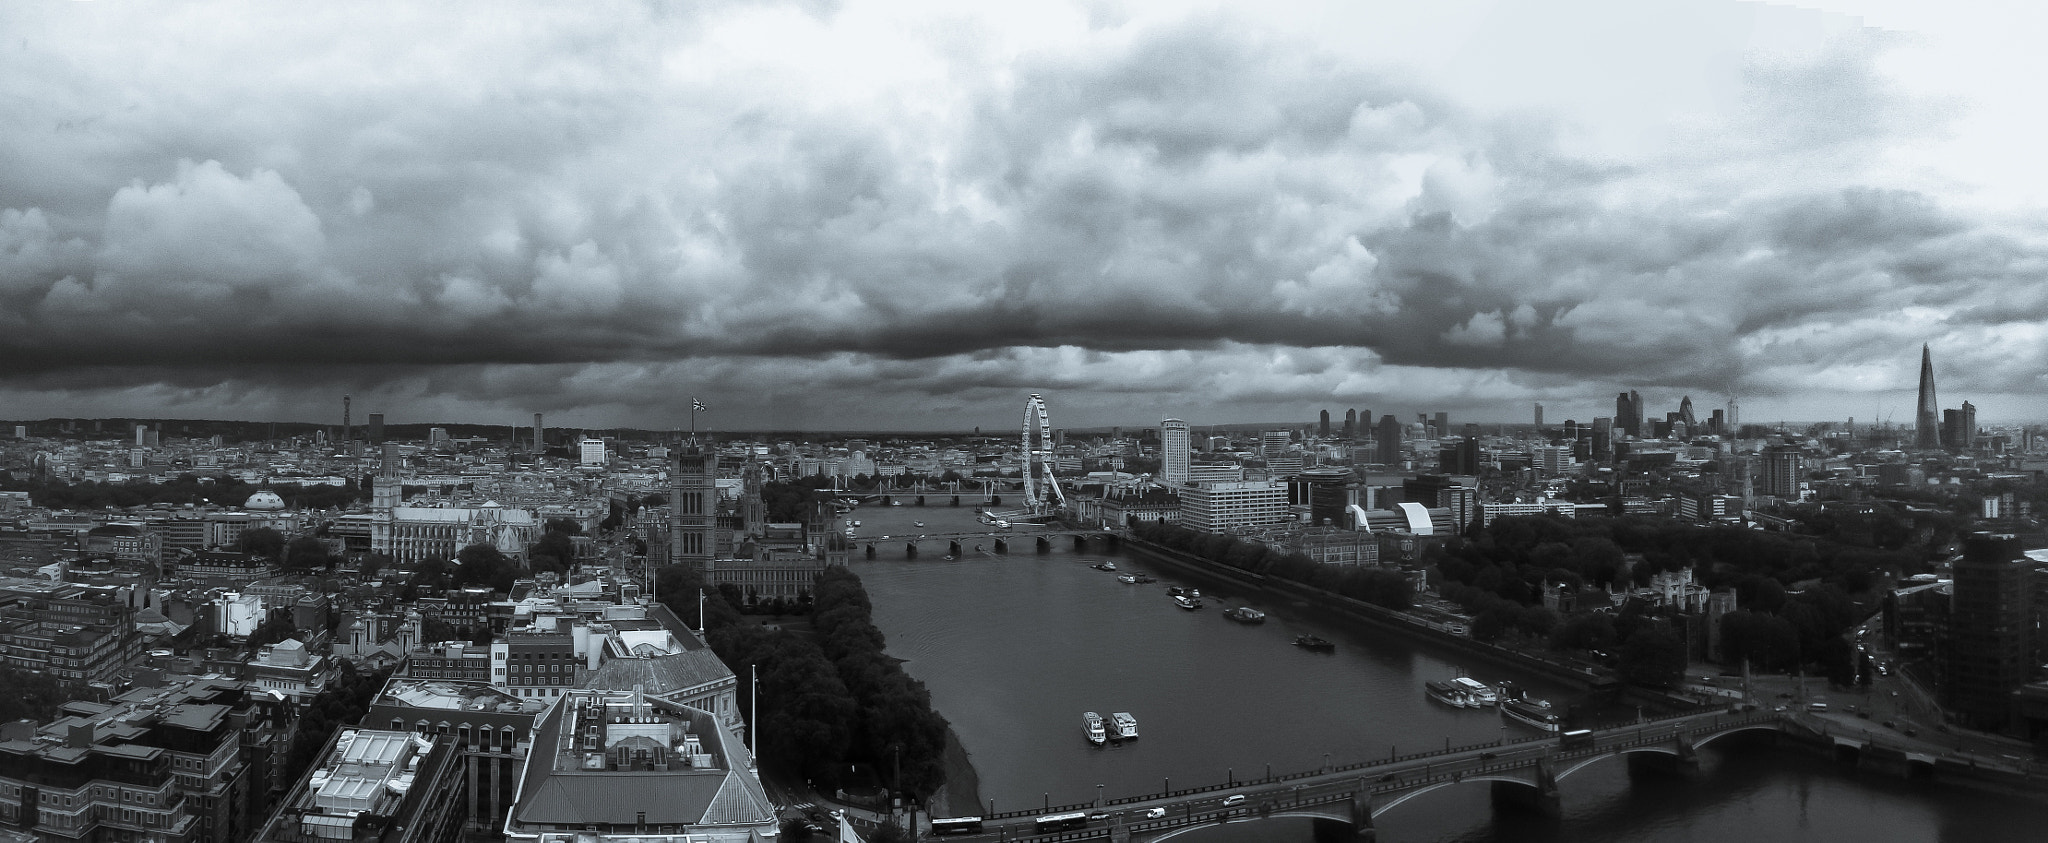 Photograph London Panorama by James Hall on 500px